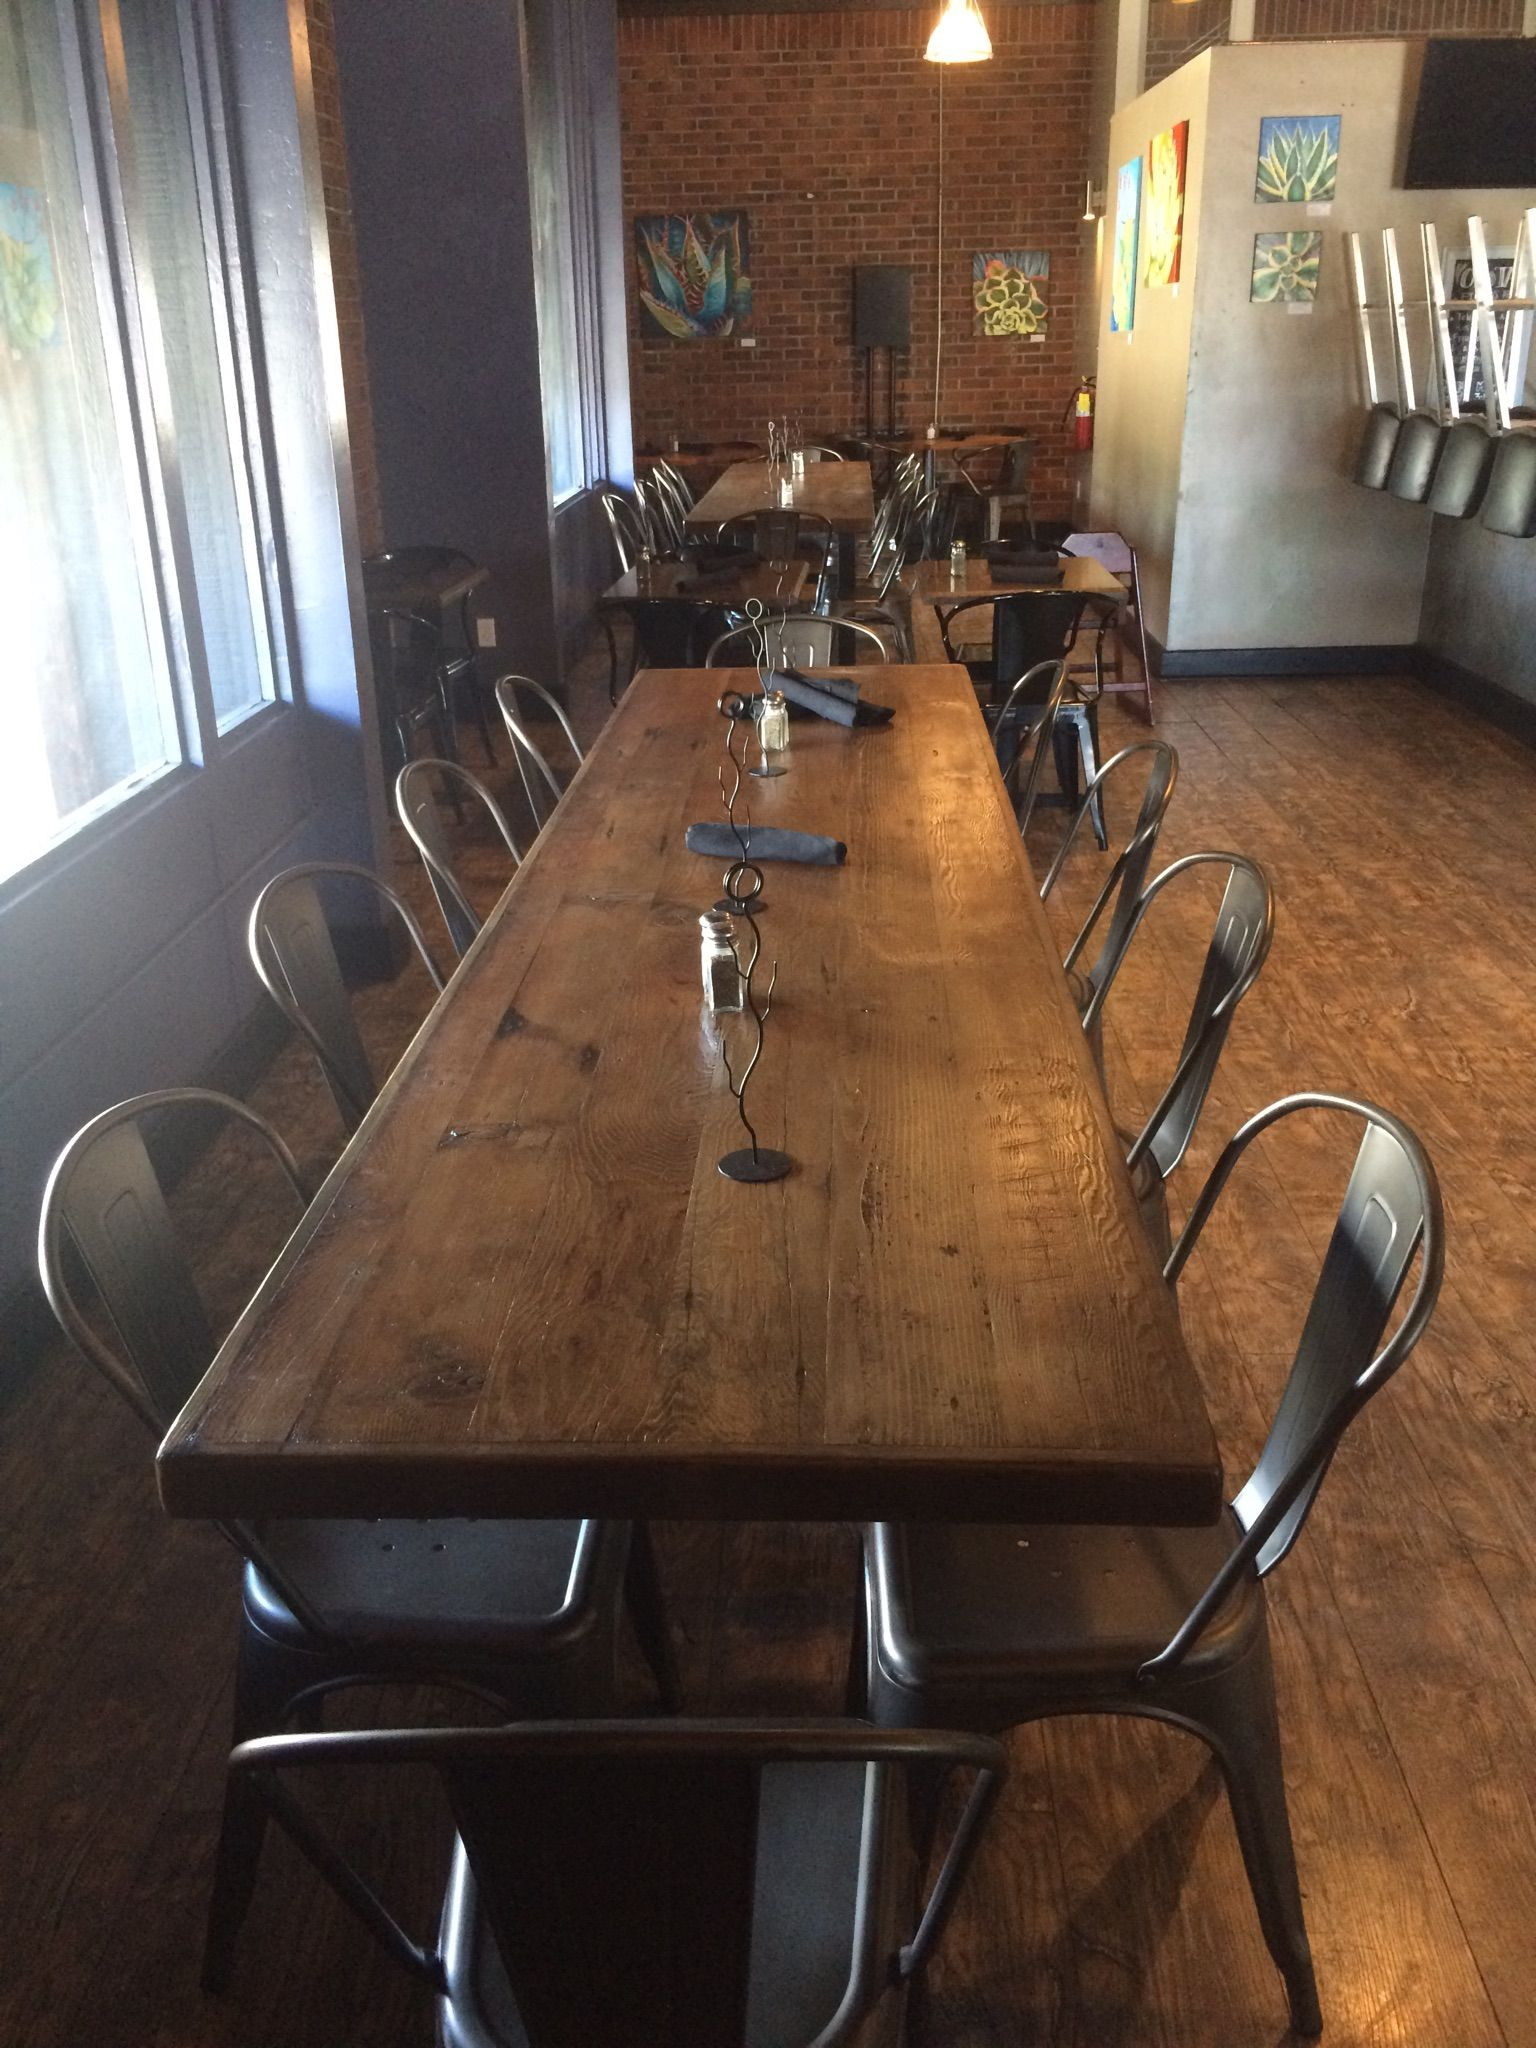 Wood restaurant furniture - Reclaimed Wood Table Top With Straight Planks Available In Many Sizes From Restaurant And Cafe Supplies